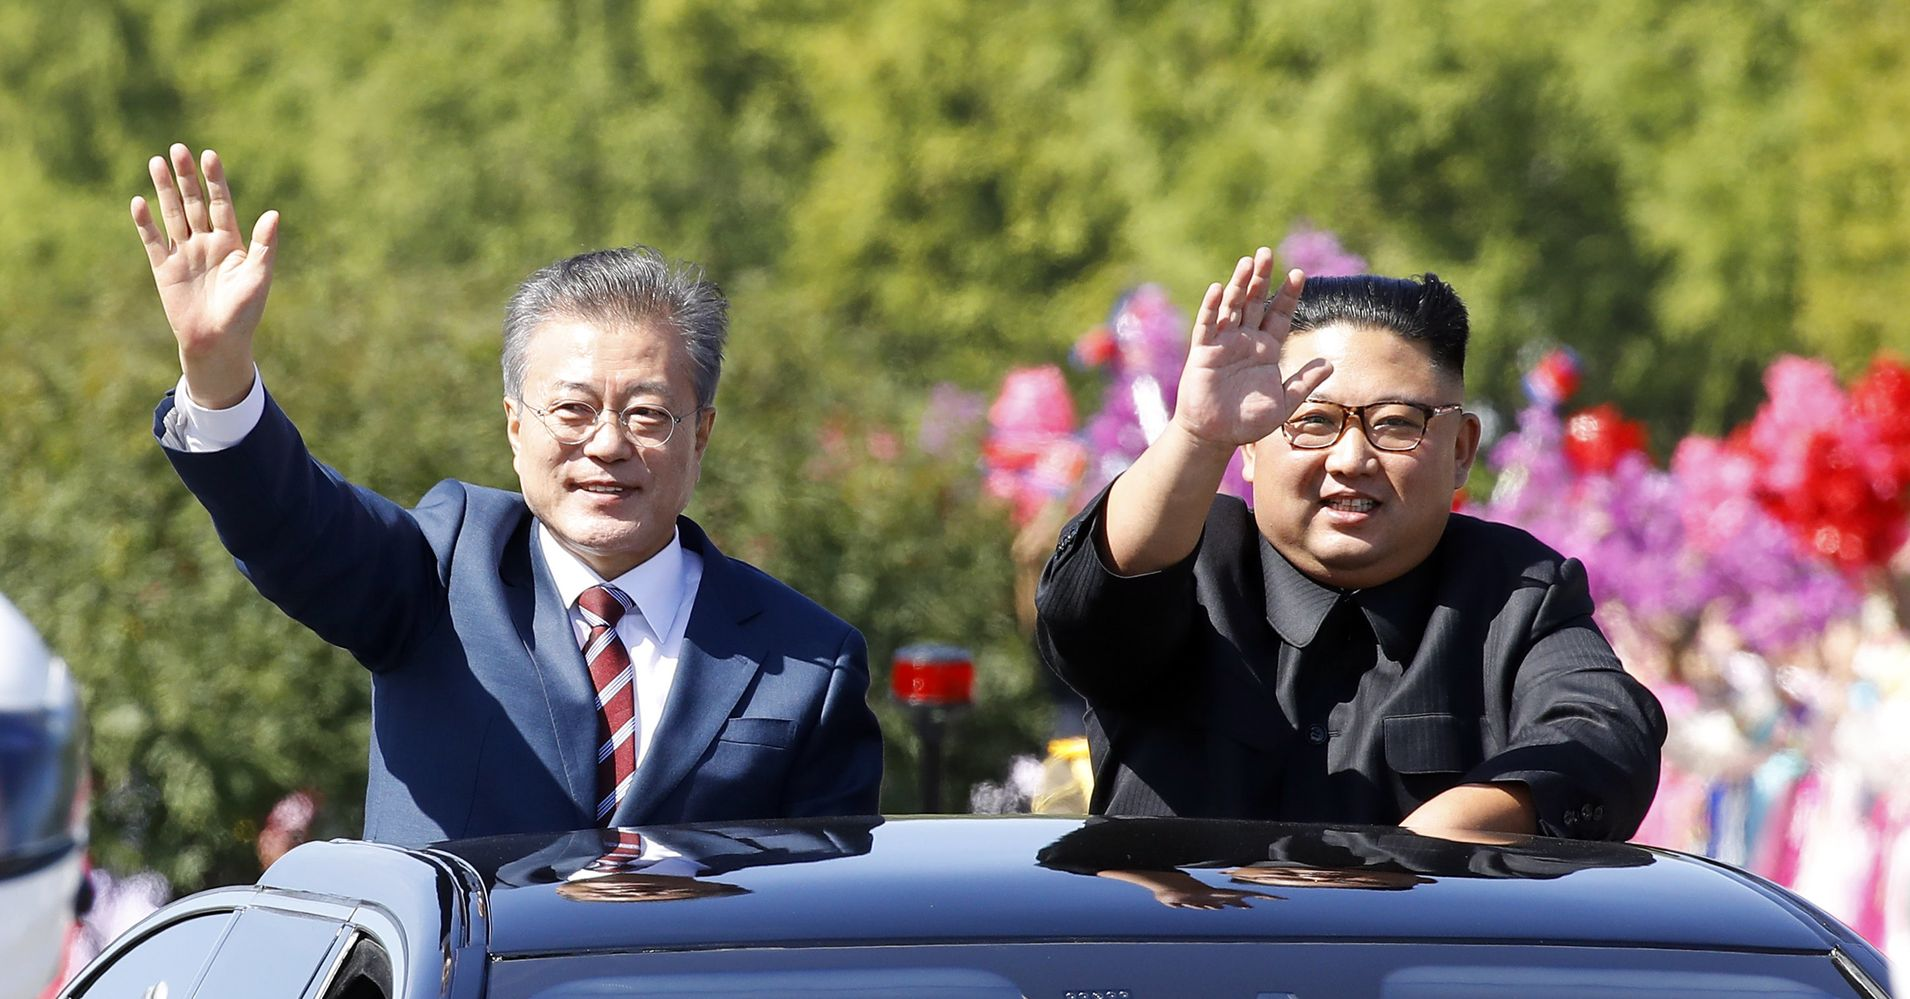 Korean Leaders Meet In Pyongyang For A Potentially Tough Summit | HuffPost